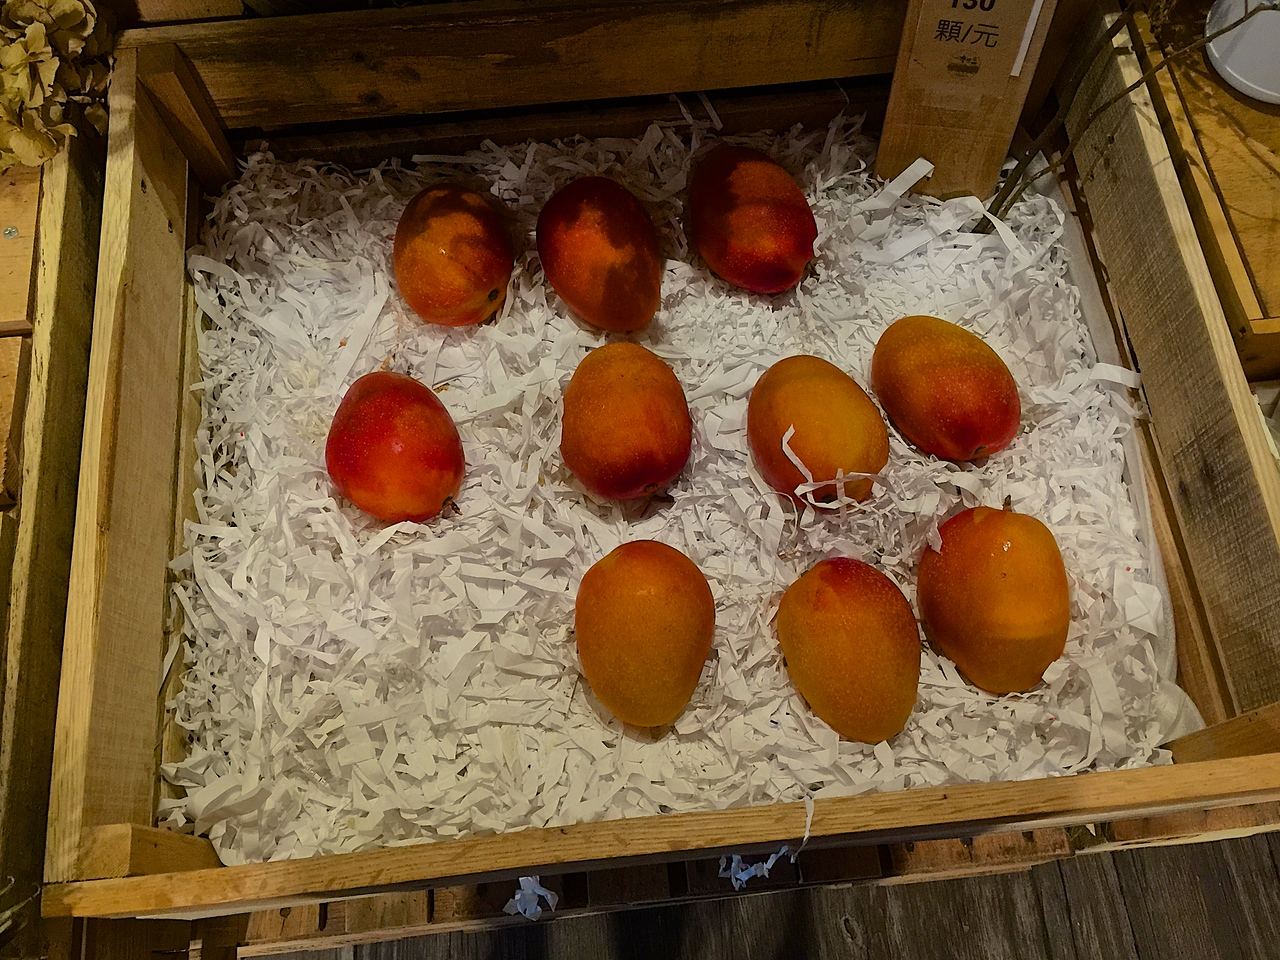 These Irwin Mangos look like they're almost unreal they're so perfect.